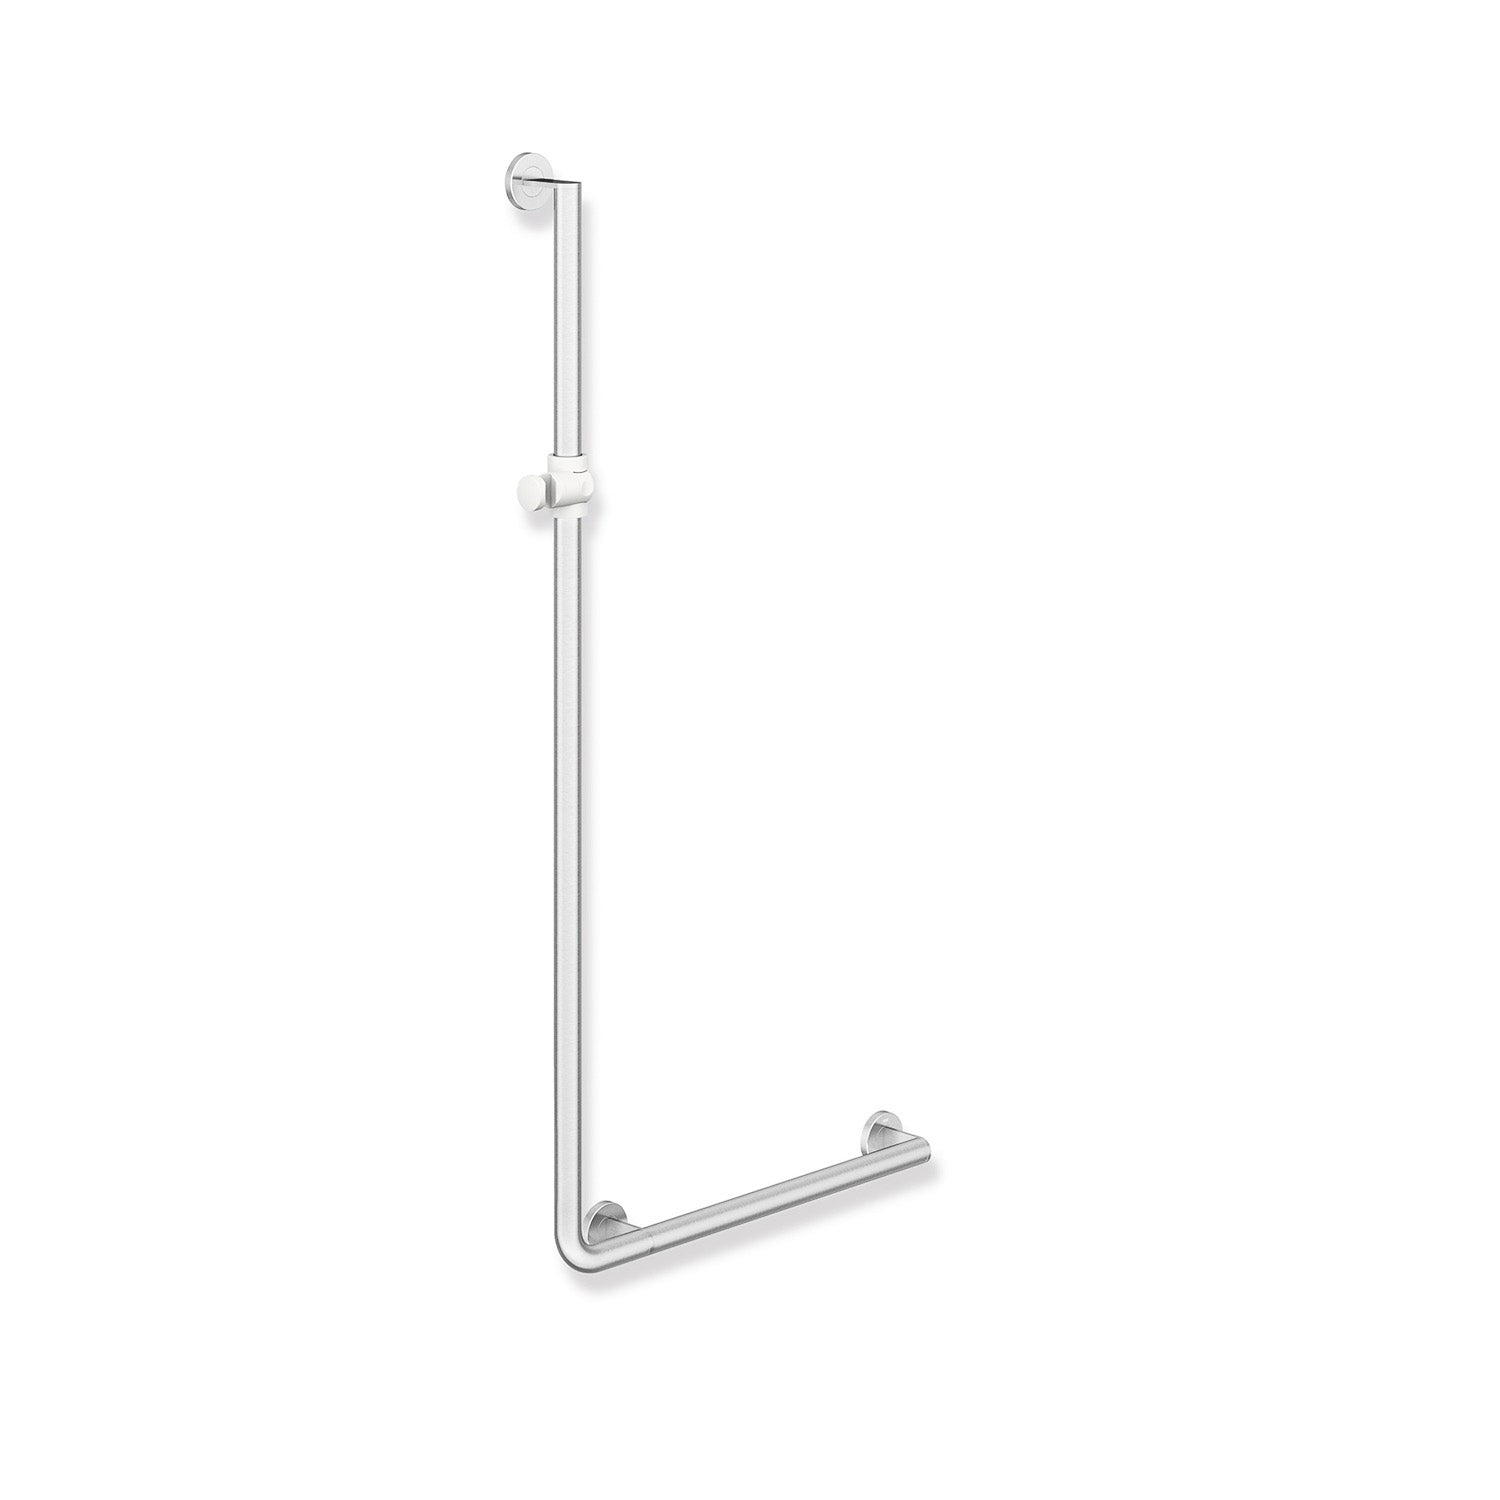 1250x600mm Right Handed Freestyle Supportive L Shaped Shower Rail with a satin steel finish on a white background